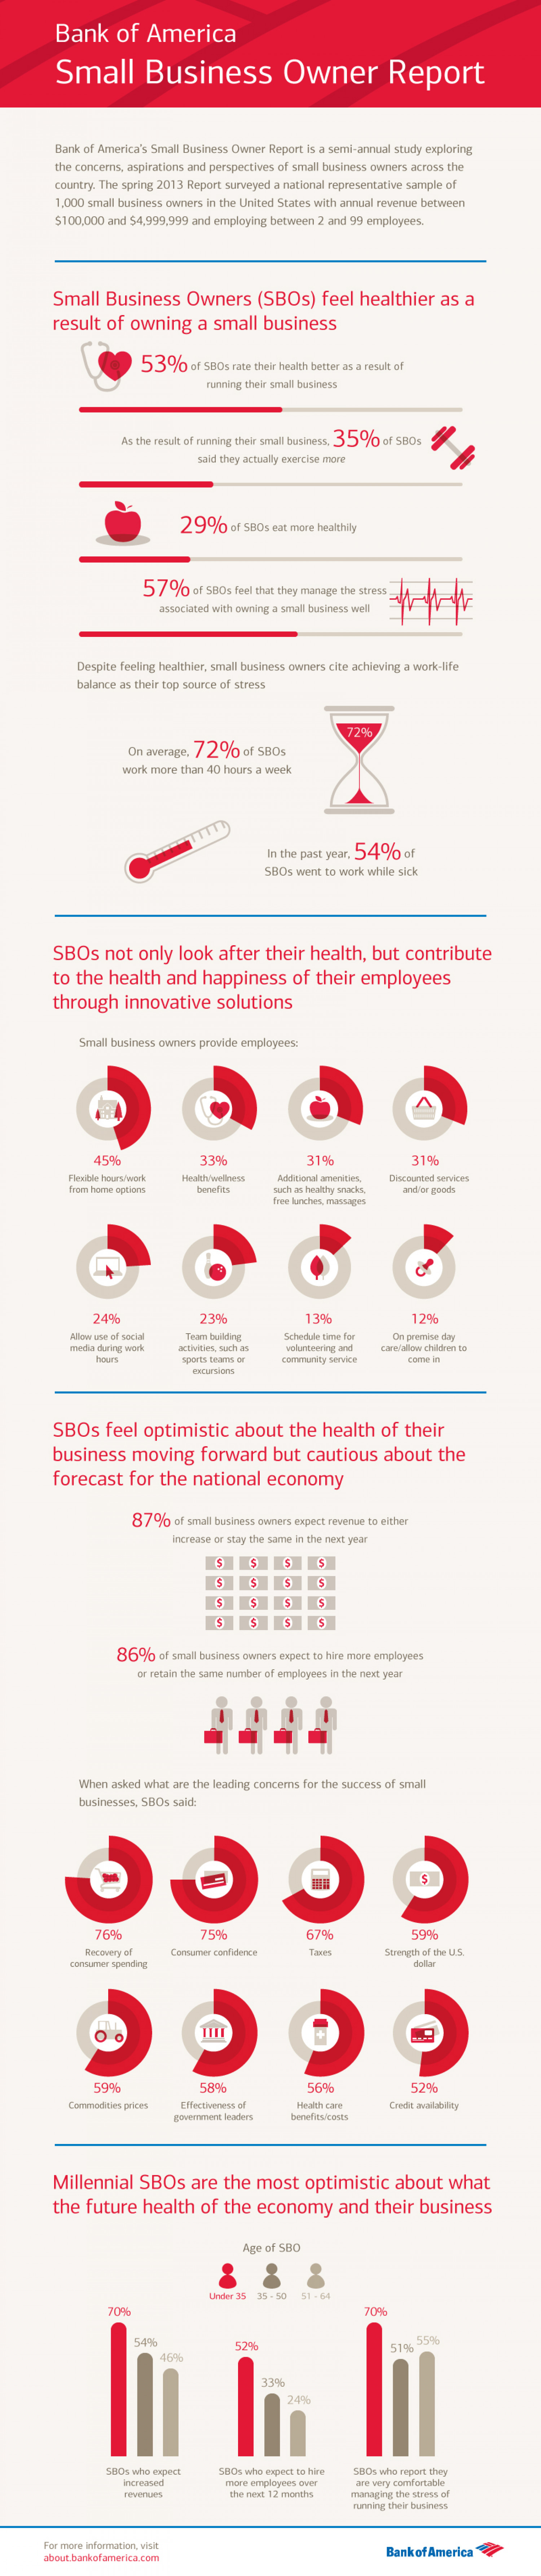 Bank of America Small Business Owner Report Spring 2013 Infographic